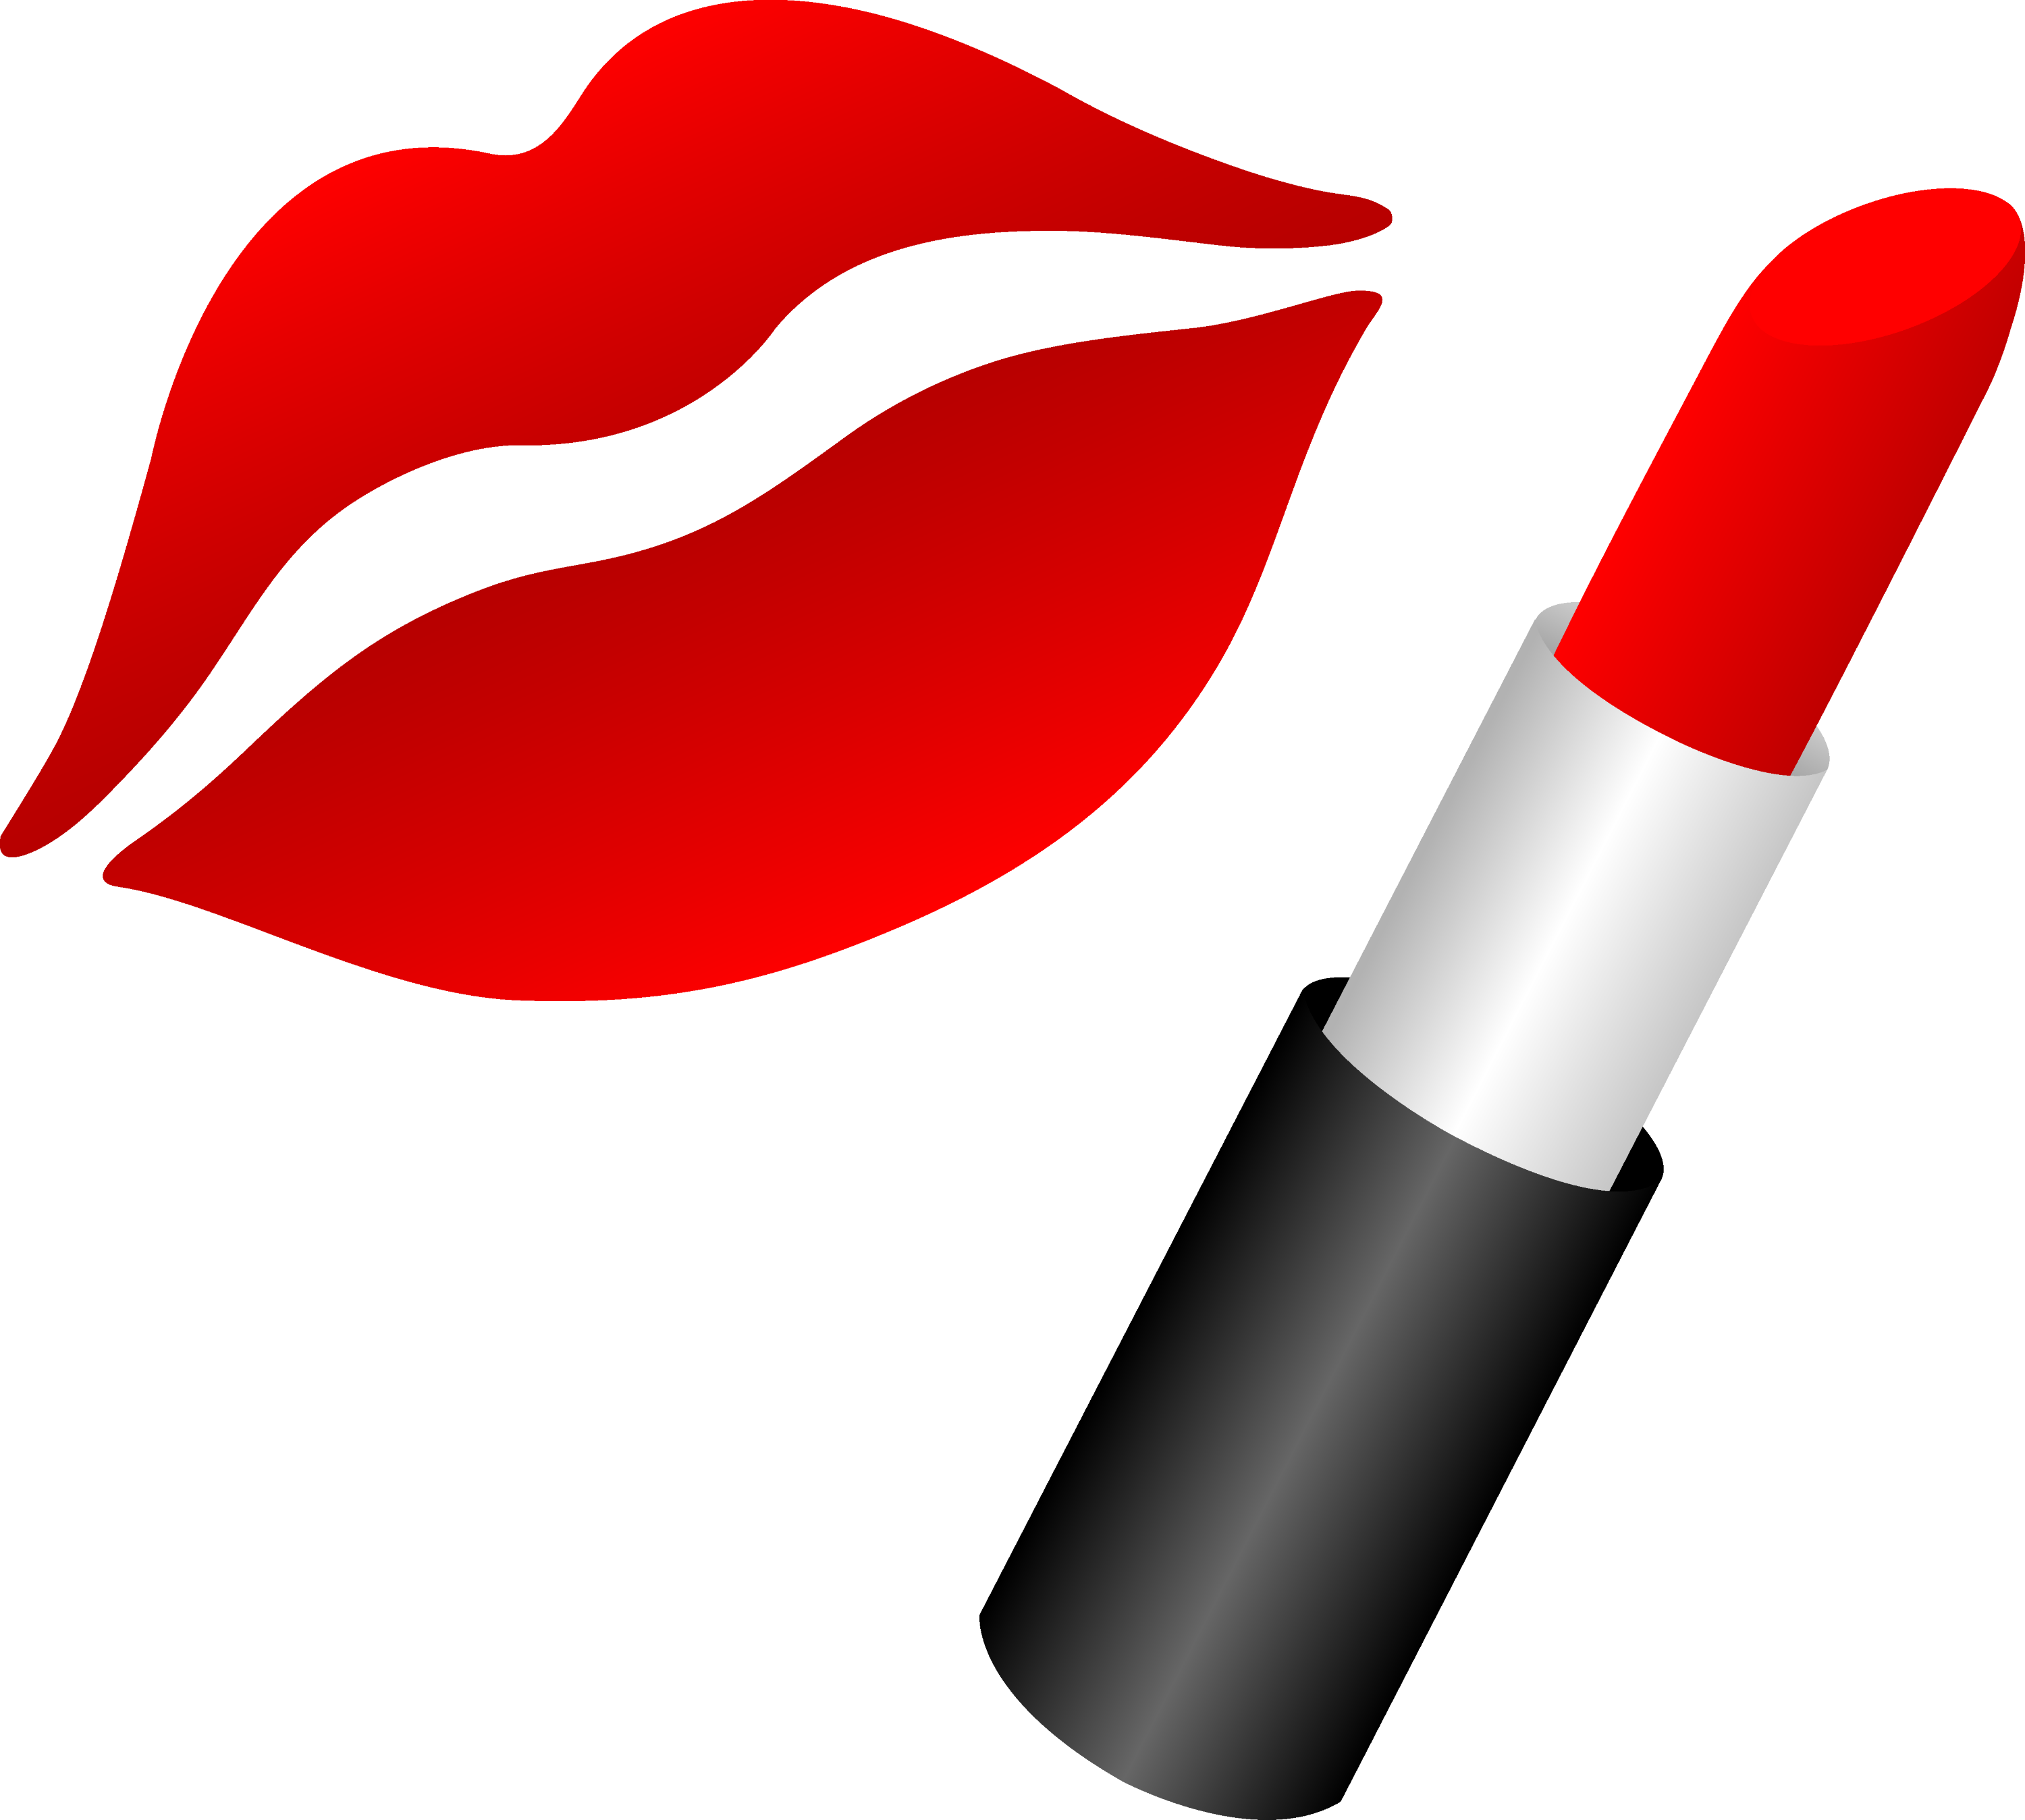 http://sweetclipart.com/multisite/sweetclipart/files/lipstick_lips.png